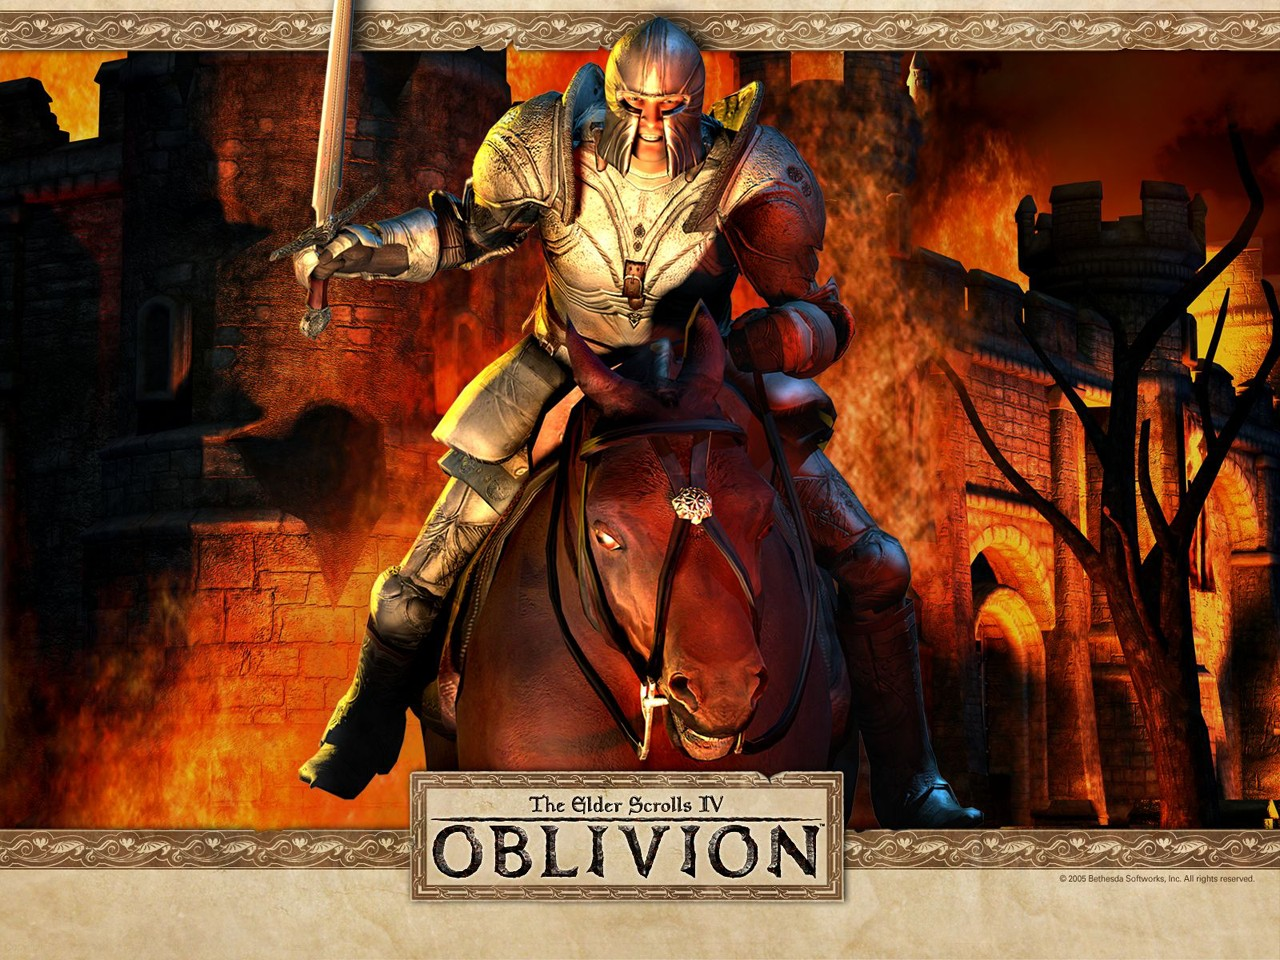 Elder scrolls 4 oblivion data files